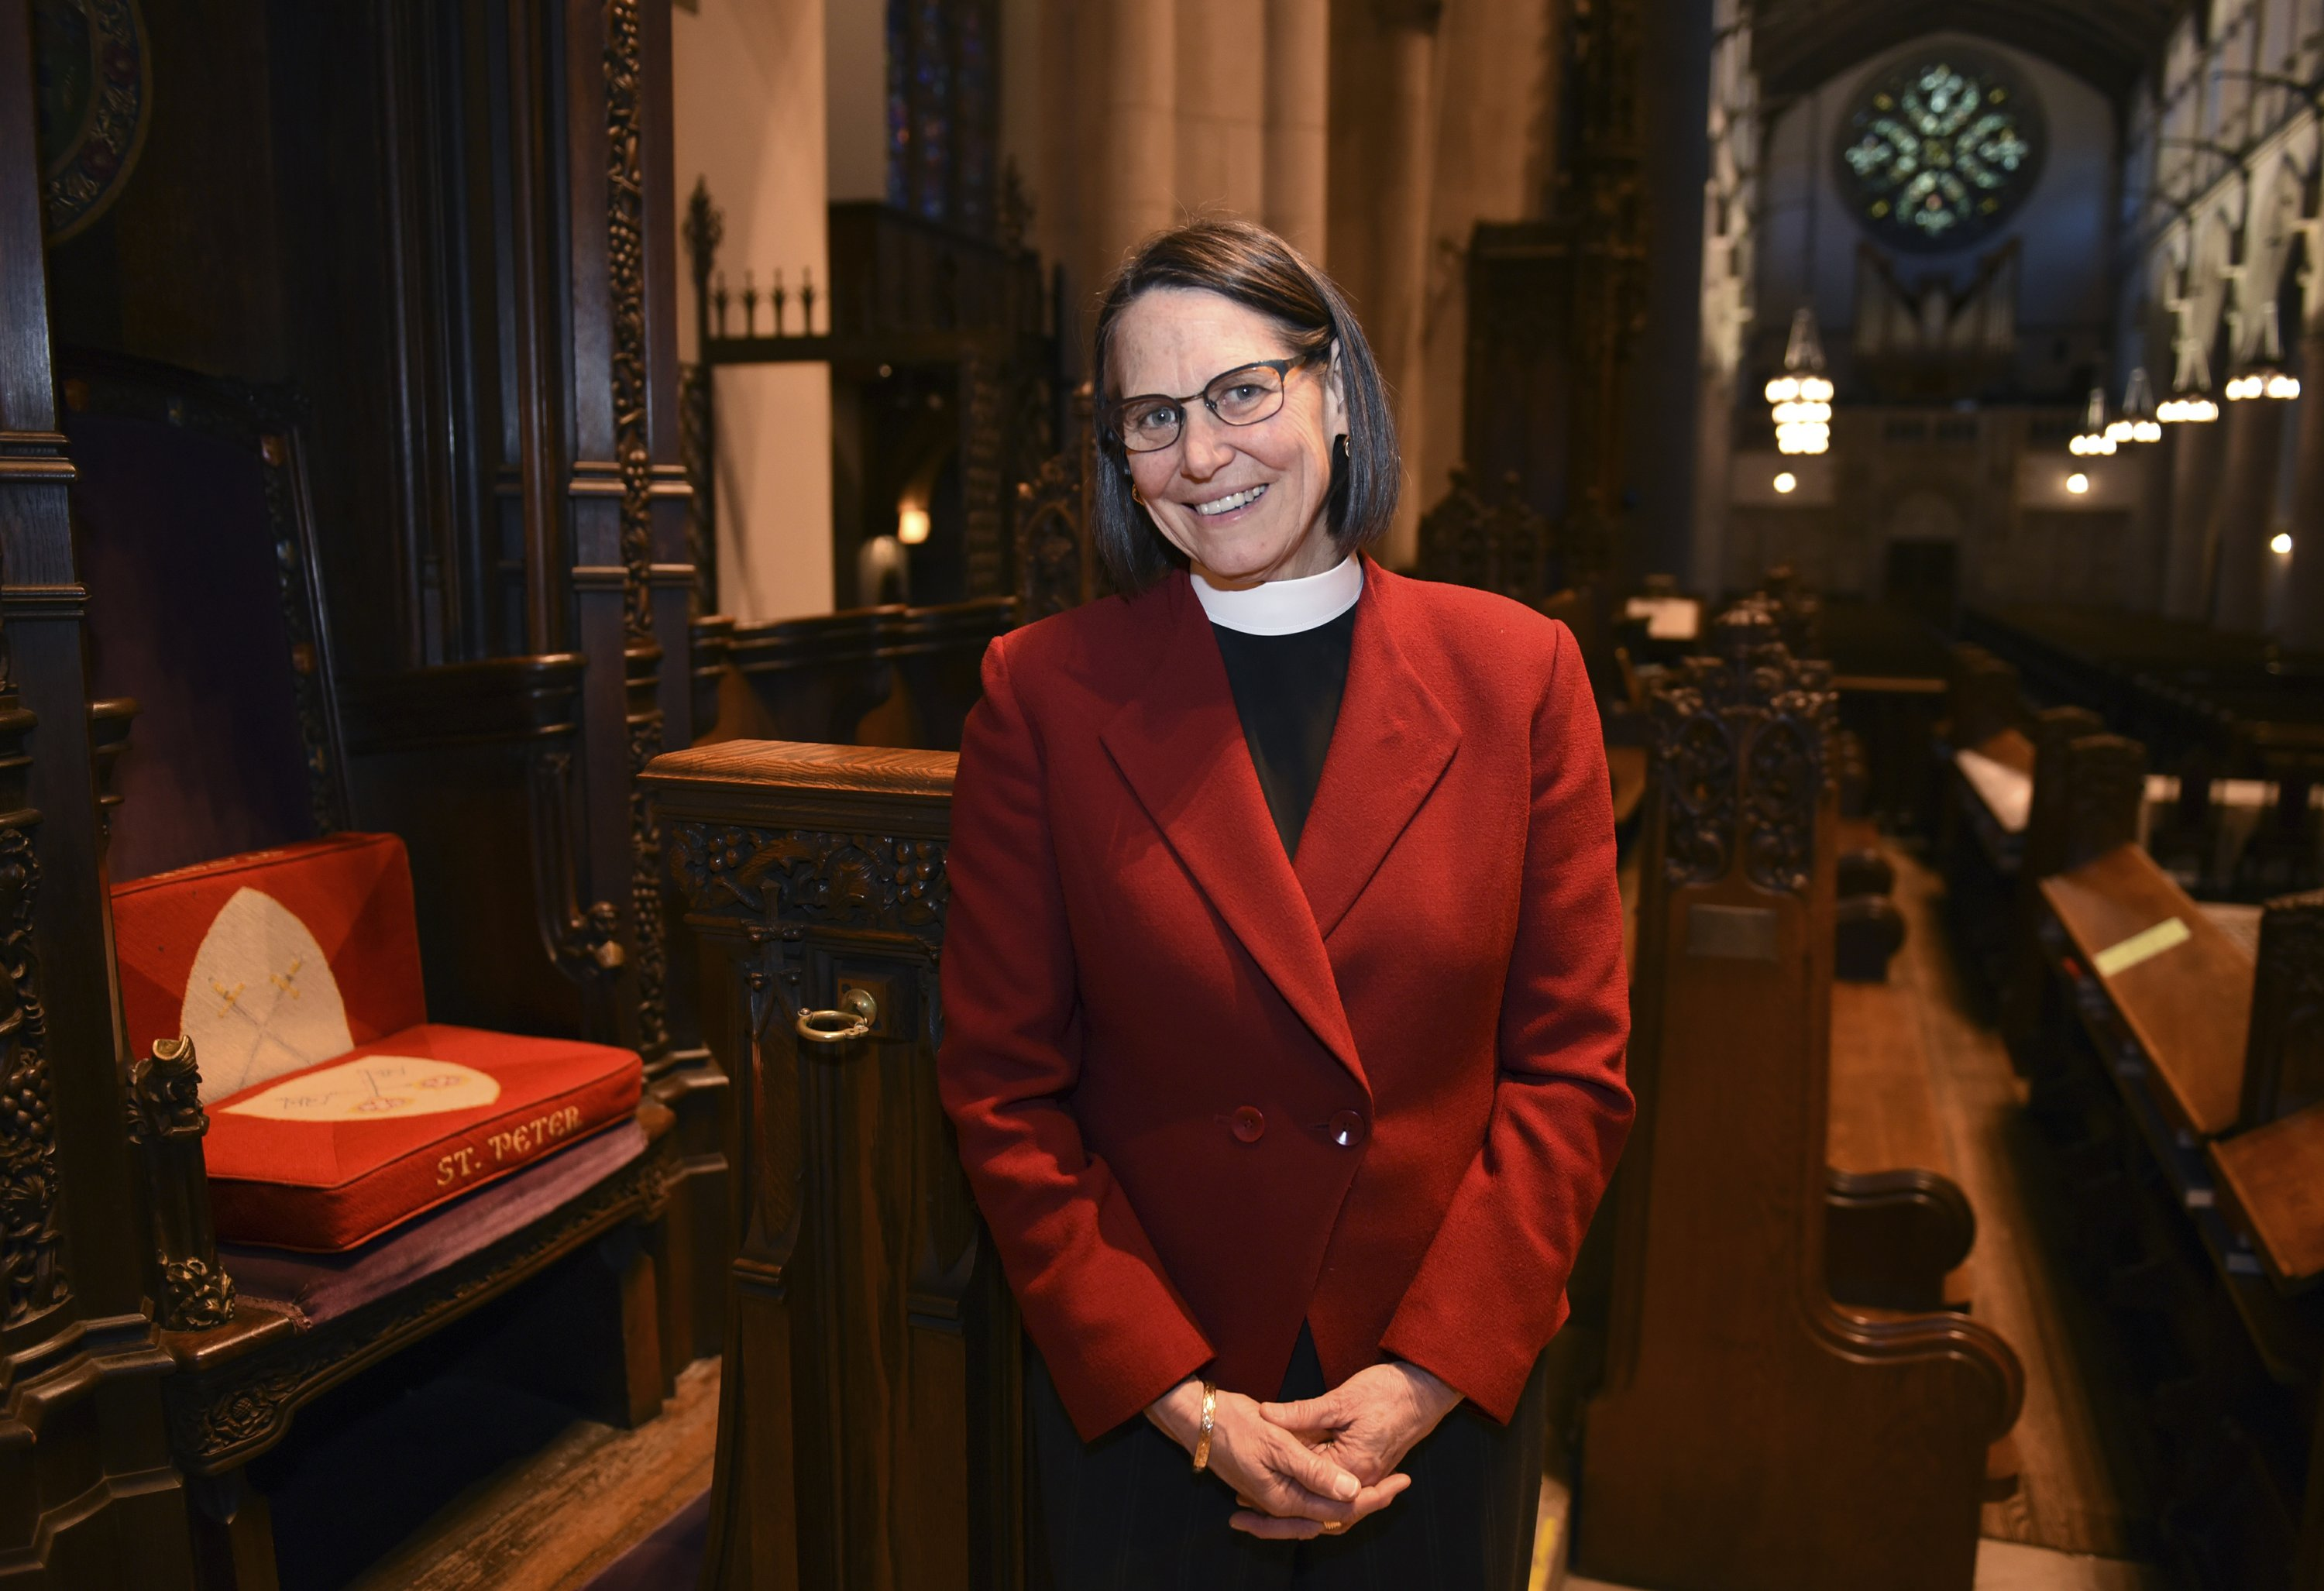 First female, lesbian leads Michigan Episcopal diocese